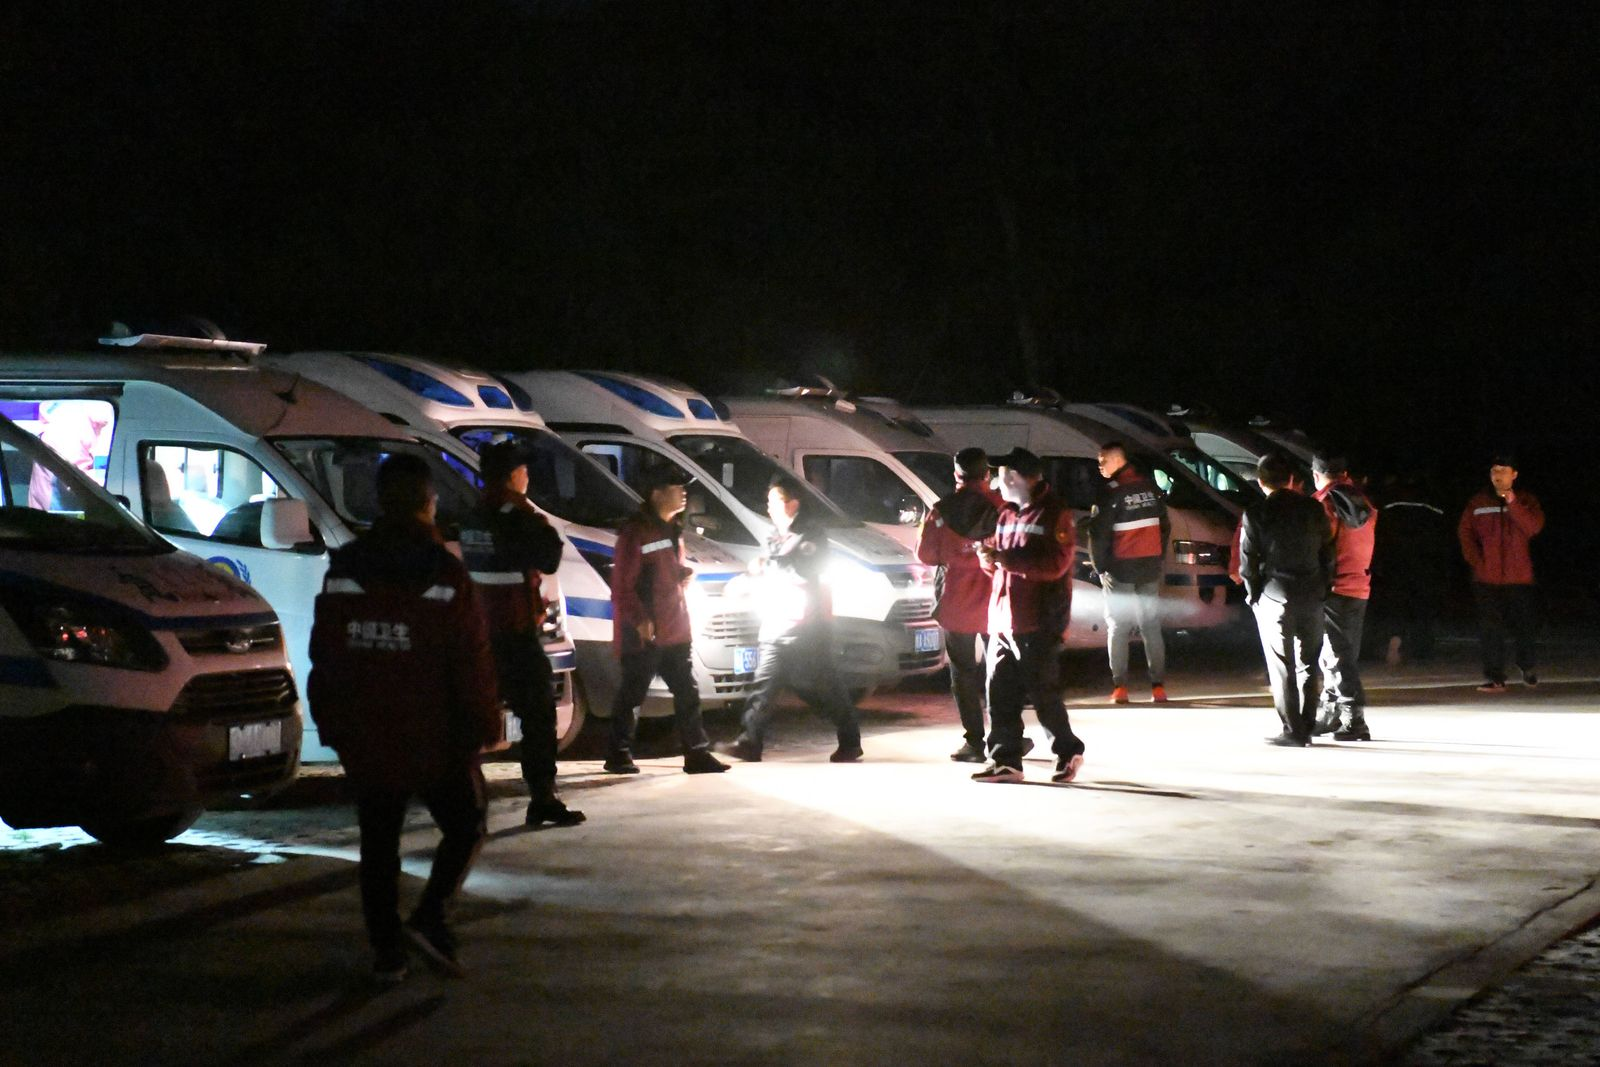 (210523) -- JINGTAI, May 23, 2021 -- Rescuers are on standby at the Yellow River Stone Forest tourist site in Jingtai C